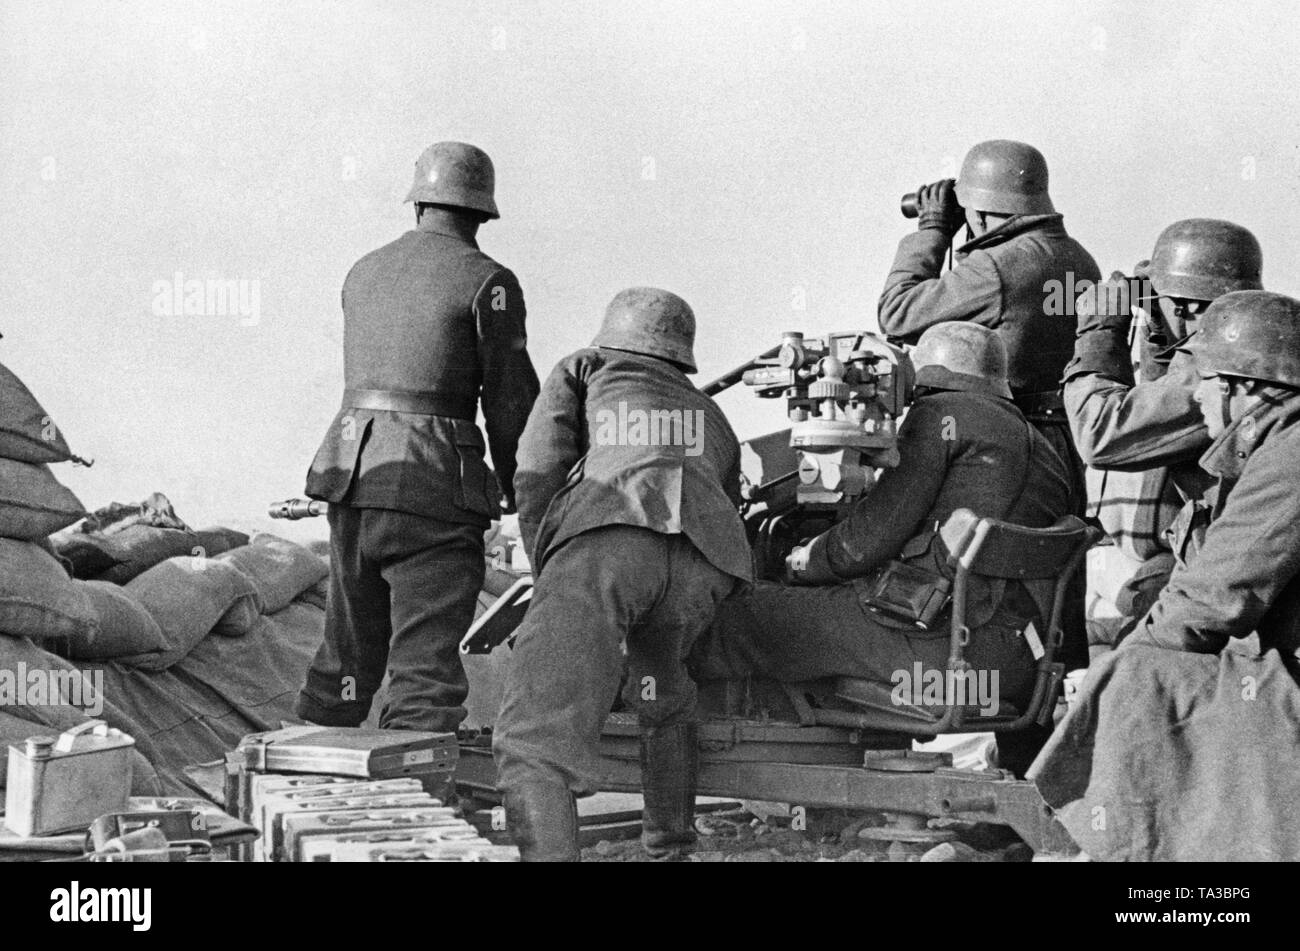 Undated photo of an anti-aircraft unit of the Condor Legion during a deployment in the Spanish Civil War. Two men are aiming at ground target using a 2cm FLAK 39 in a sandbag position. An officer (left) picks the targets. On the left in the front there are crates of ammunition. The soldiers are wearing M35 steel helmets. - Stock Image